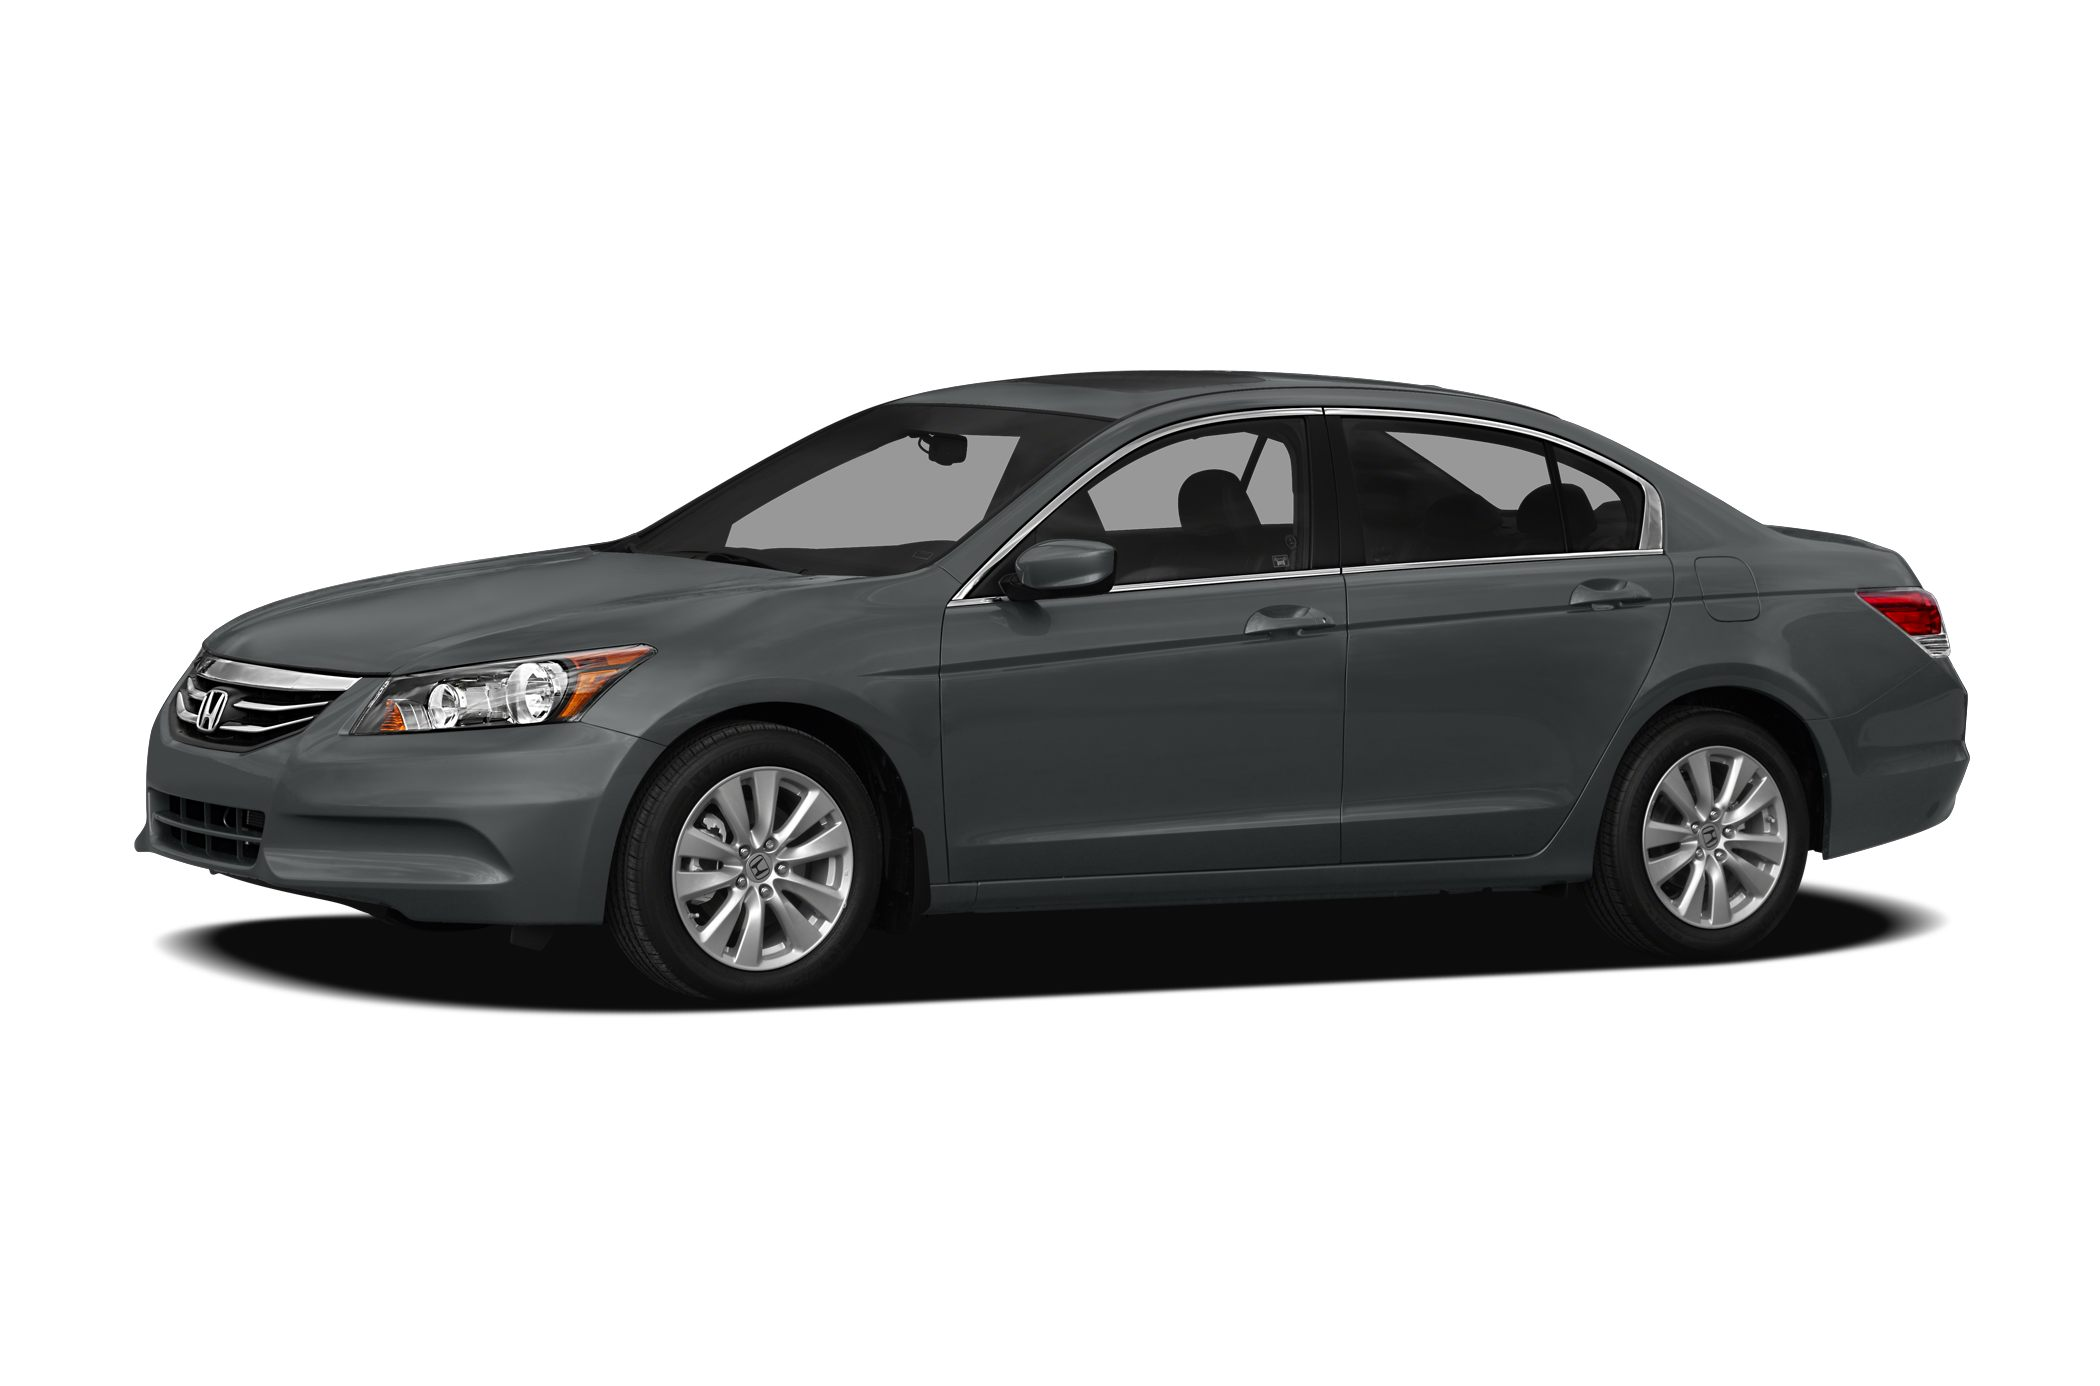 2012 Honda Accord 24 LX-P  WHEN IT COMES TO EXCELLENCE IN USED CAR SALES YOU KNOW YOURE AT S